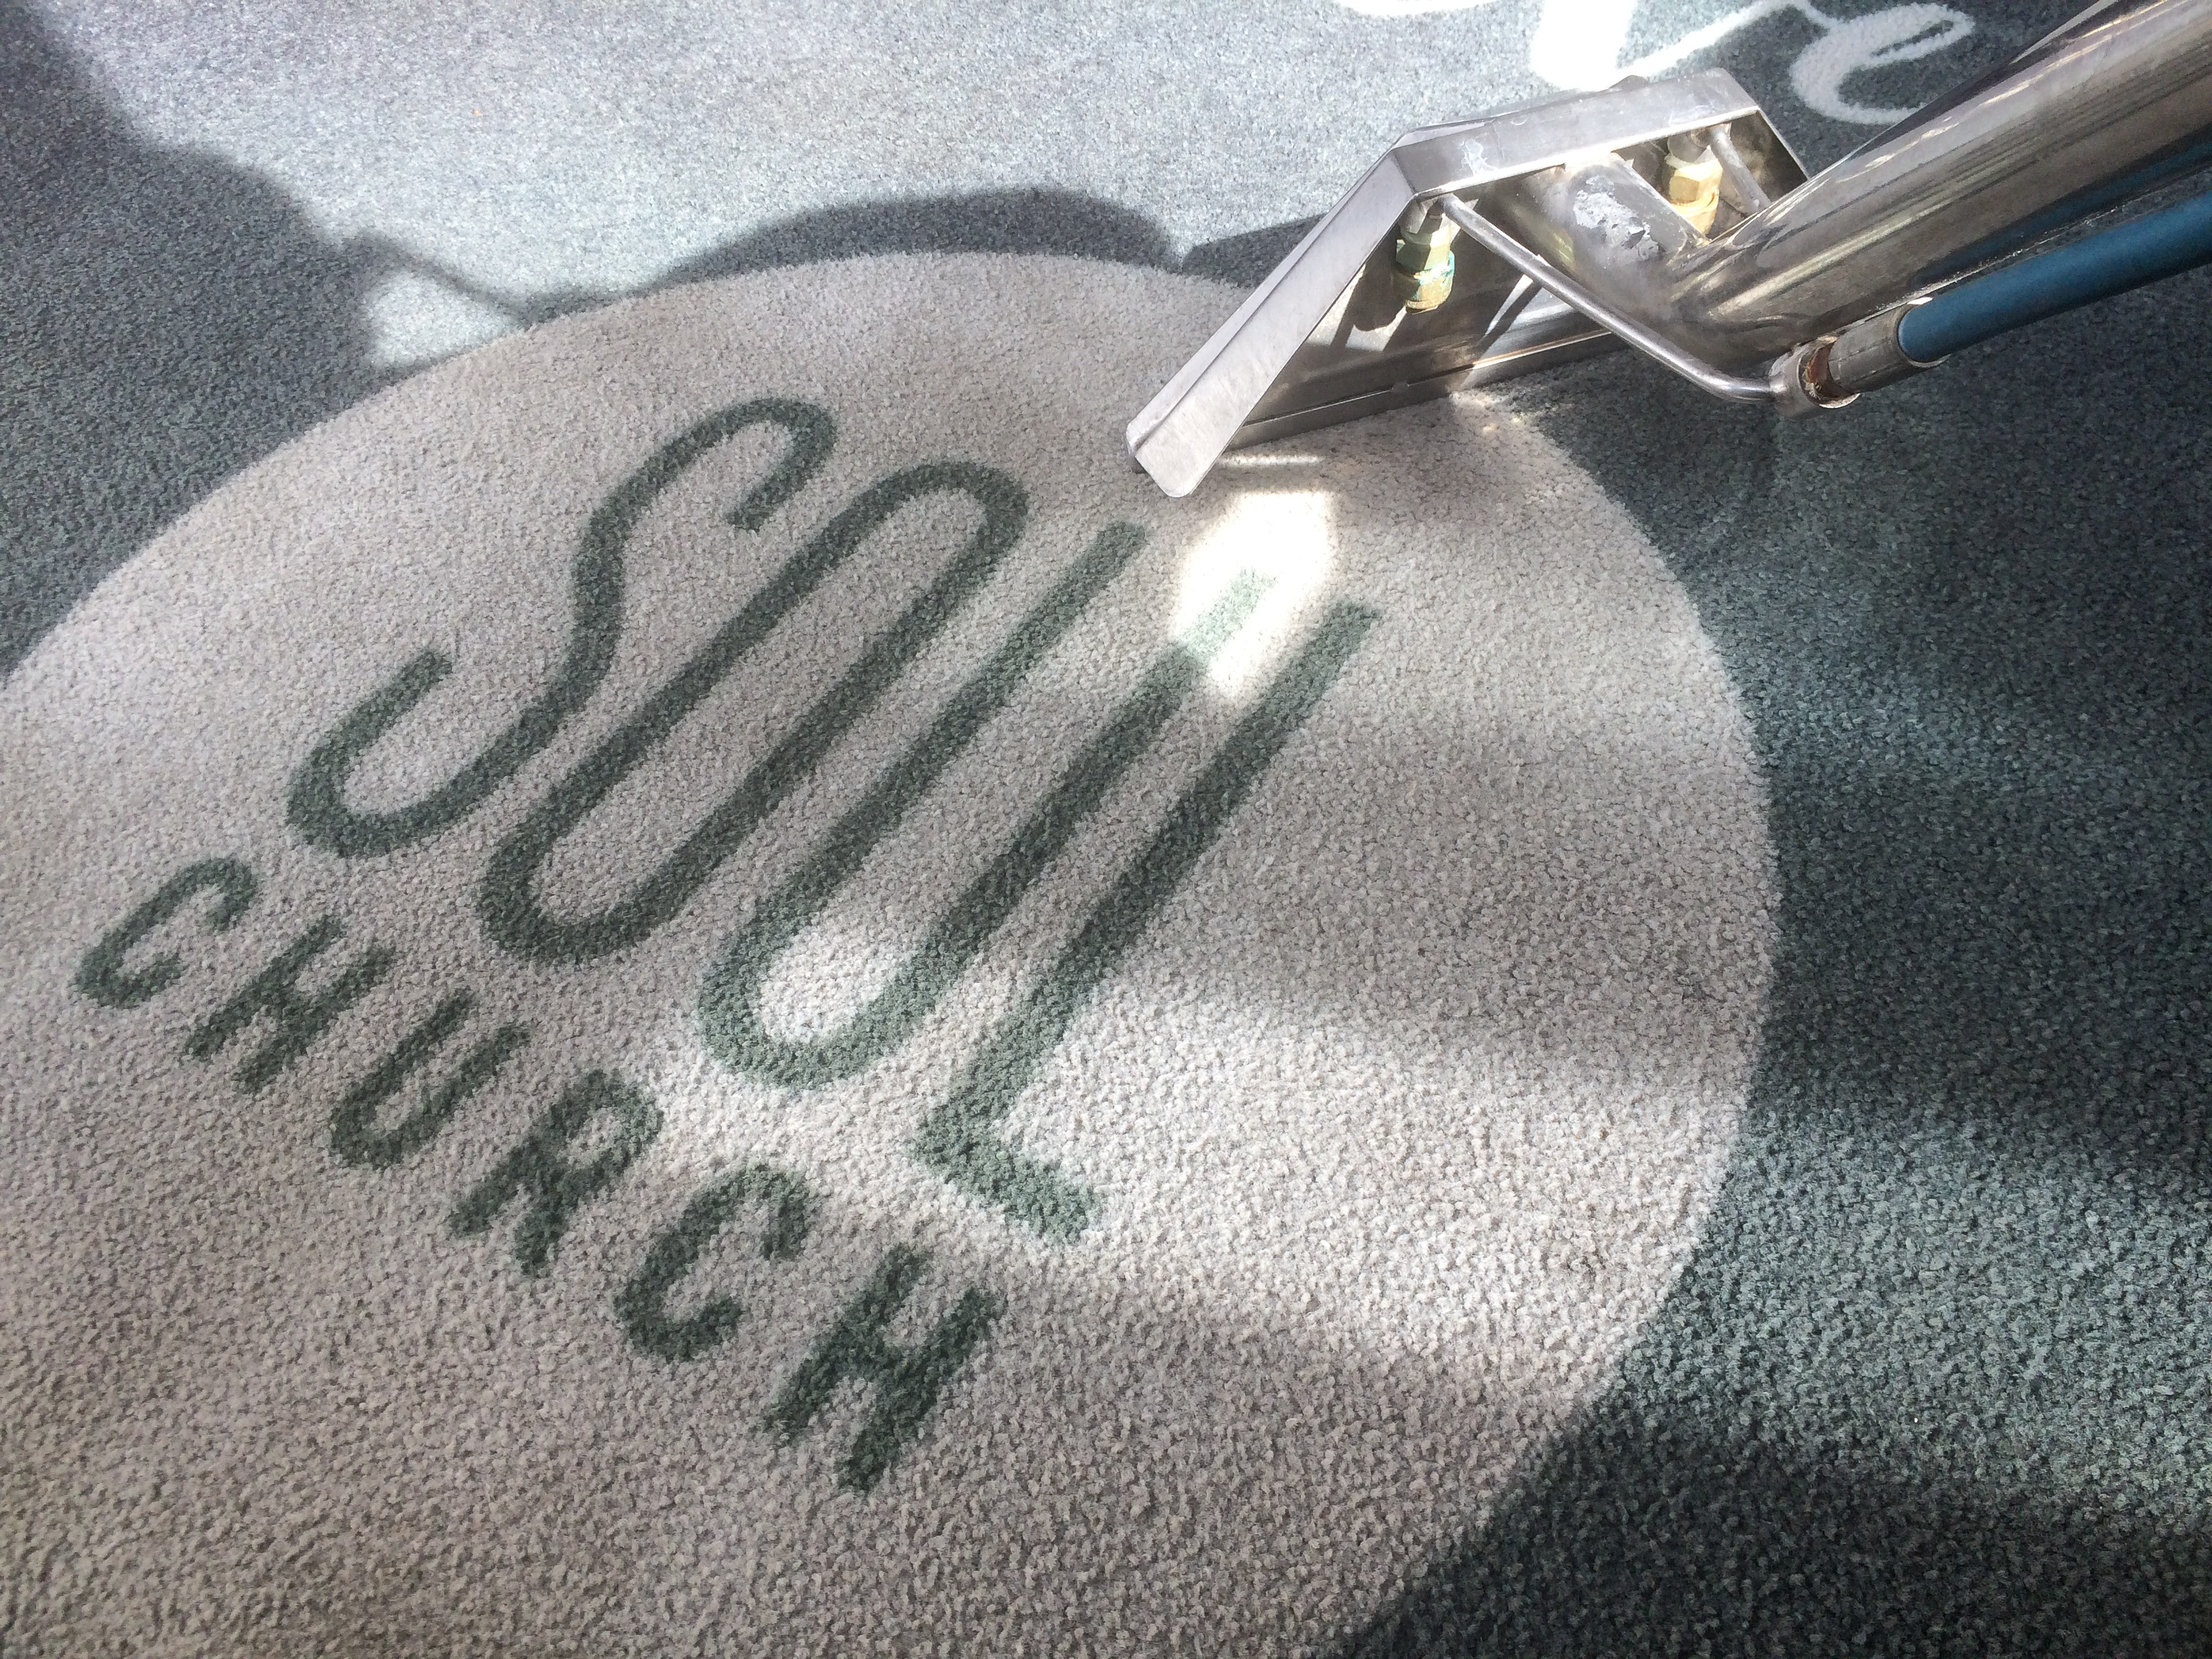 Carpet Cleaning at Soul Church Cafe Cleanliness is next to godliness